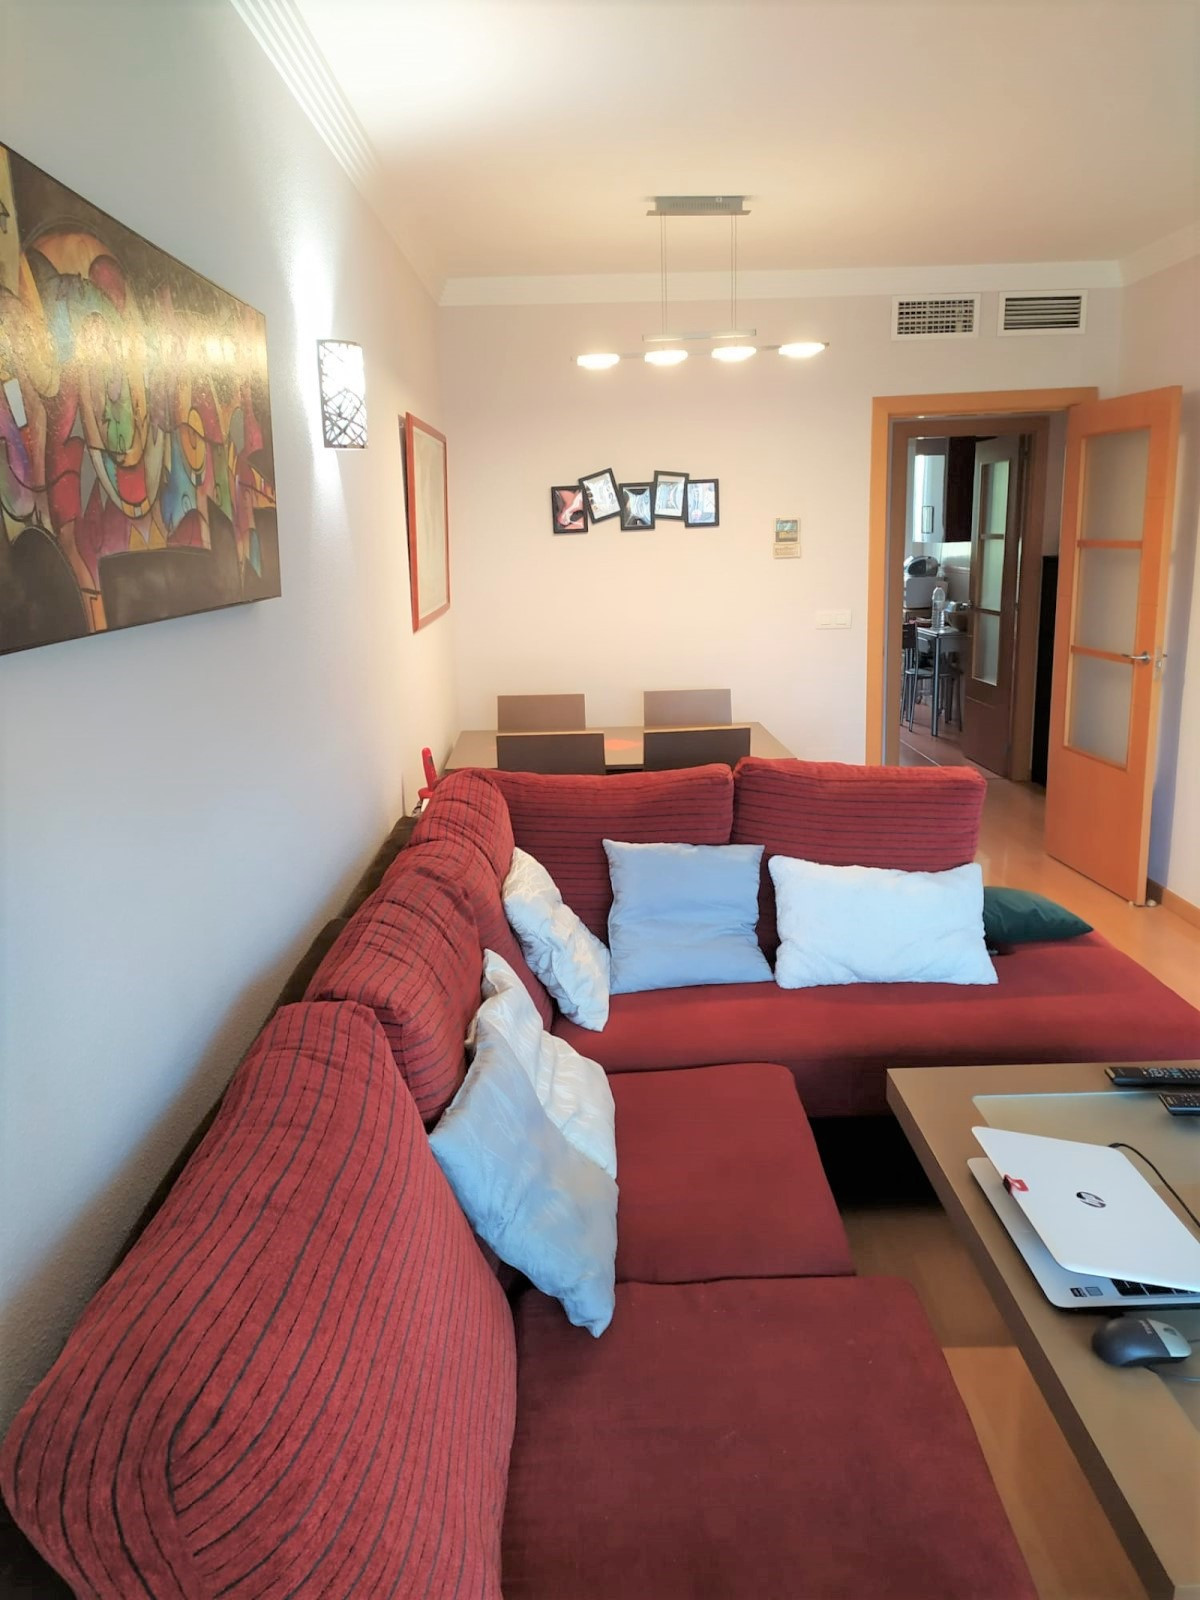 Magnificent apartment completely renovated in Carlinda area, Malaga. It has 80 sq.mts distributed in, Spain